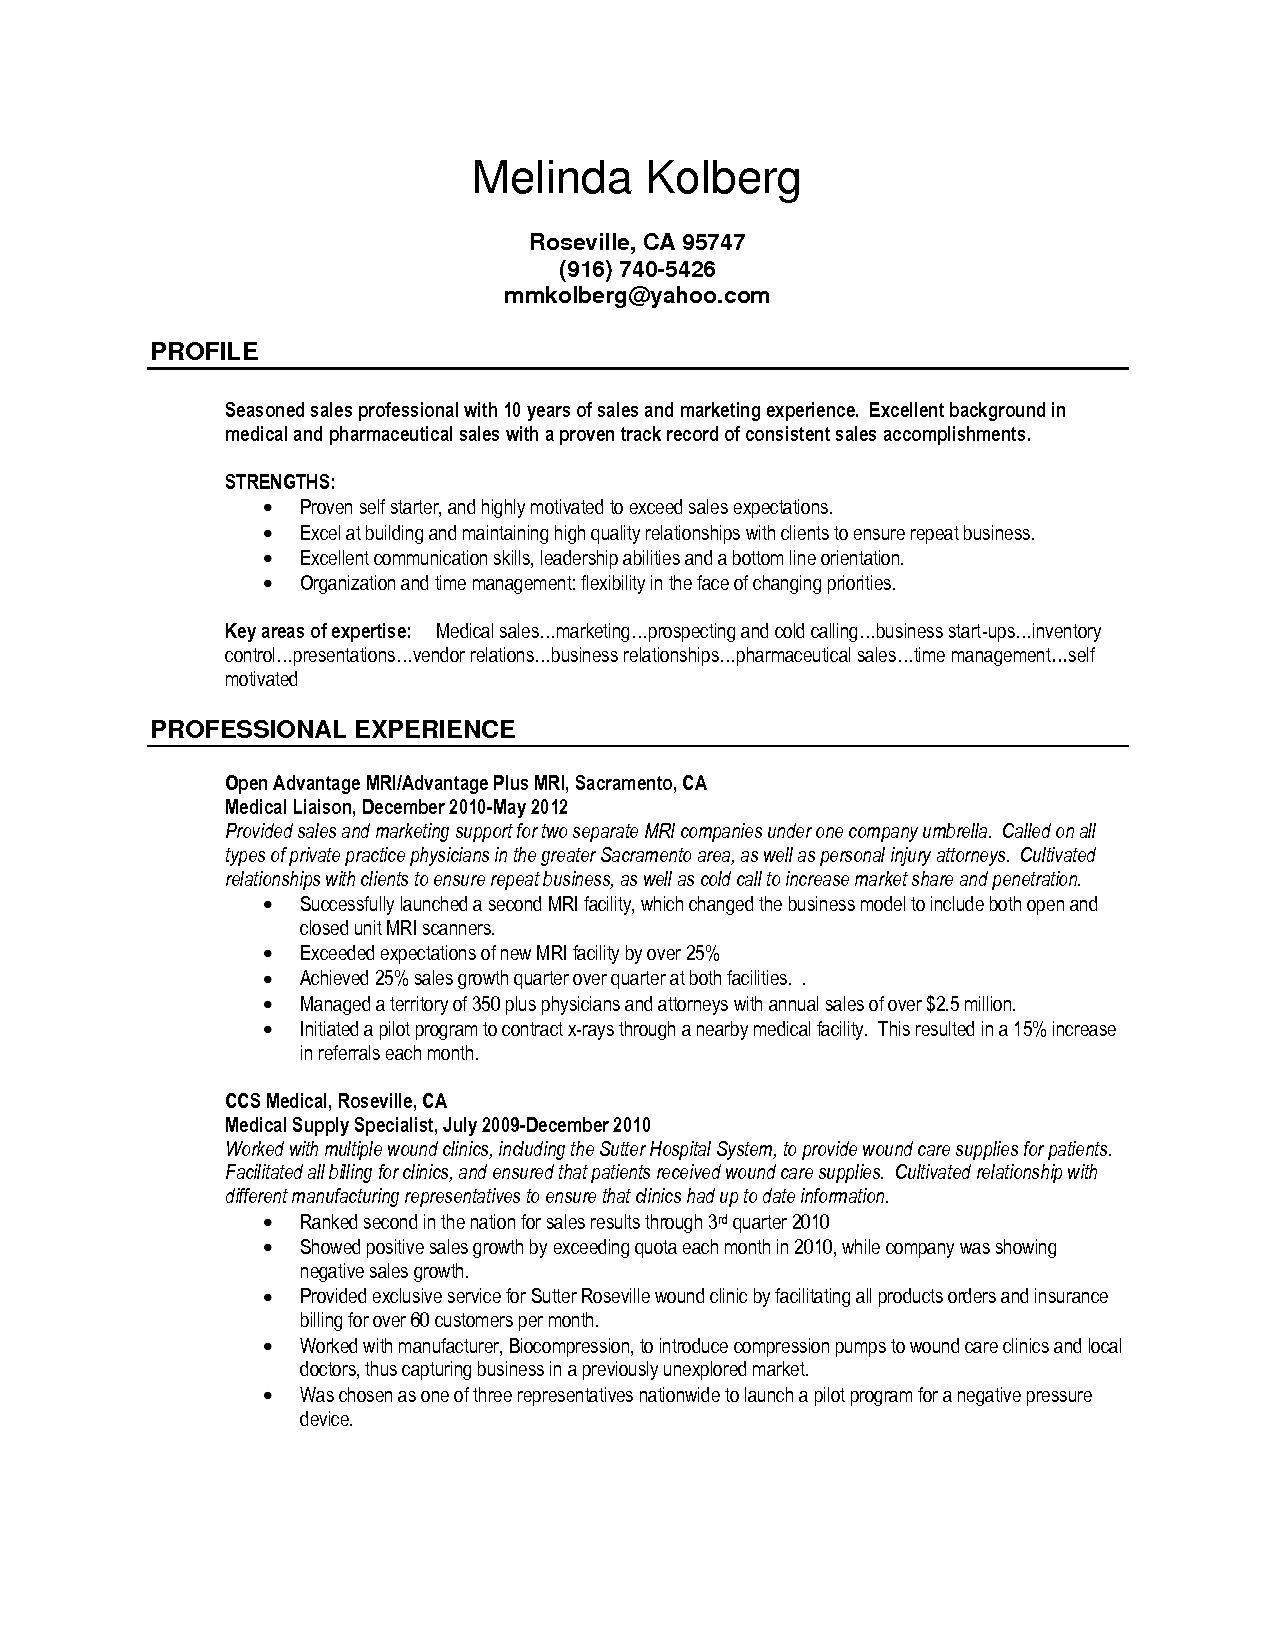 Medical Billing and Coding Cover Letter with No Experience Pleasing Medical Billing Resume No Experience About